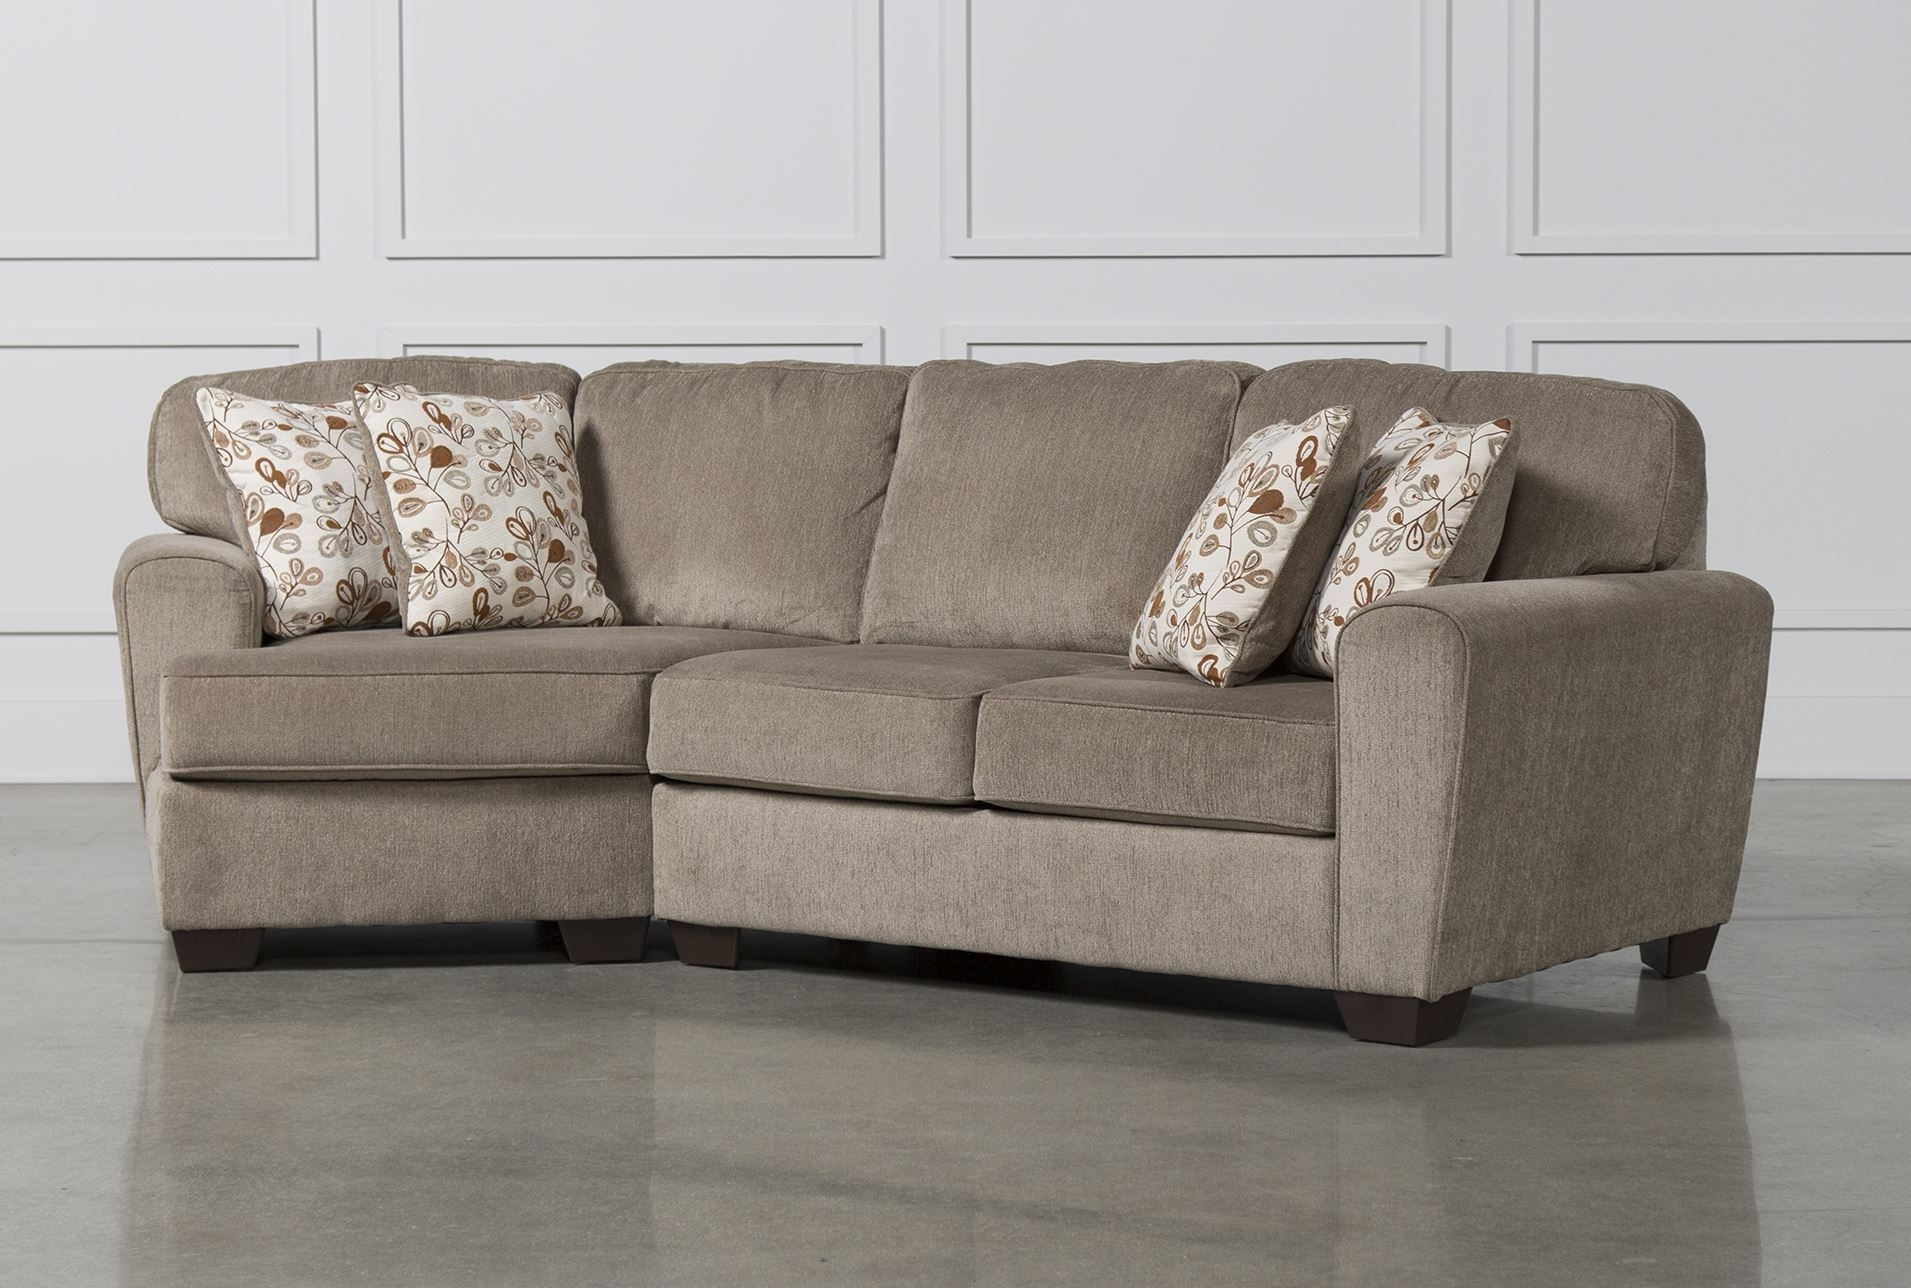 Awesome Collection Of 2 Piece Chaise Sectional In Kerri 2 Piece regarding Kerri 2 Piece Sectionals With Laf Chaise (Image 5 of 30)